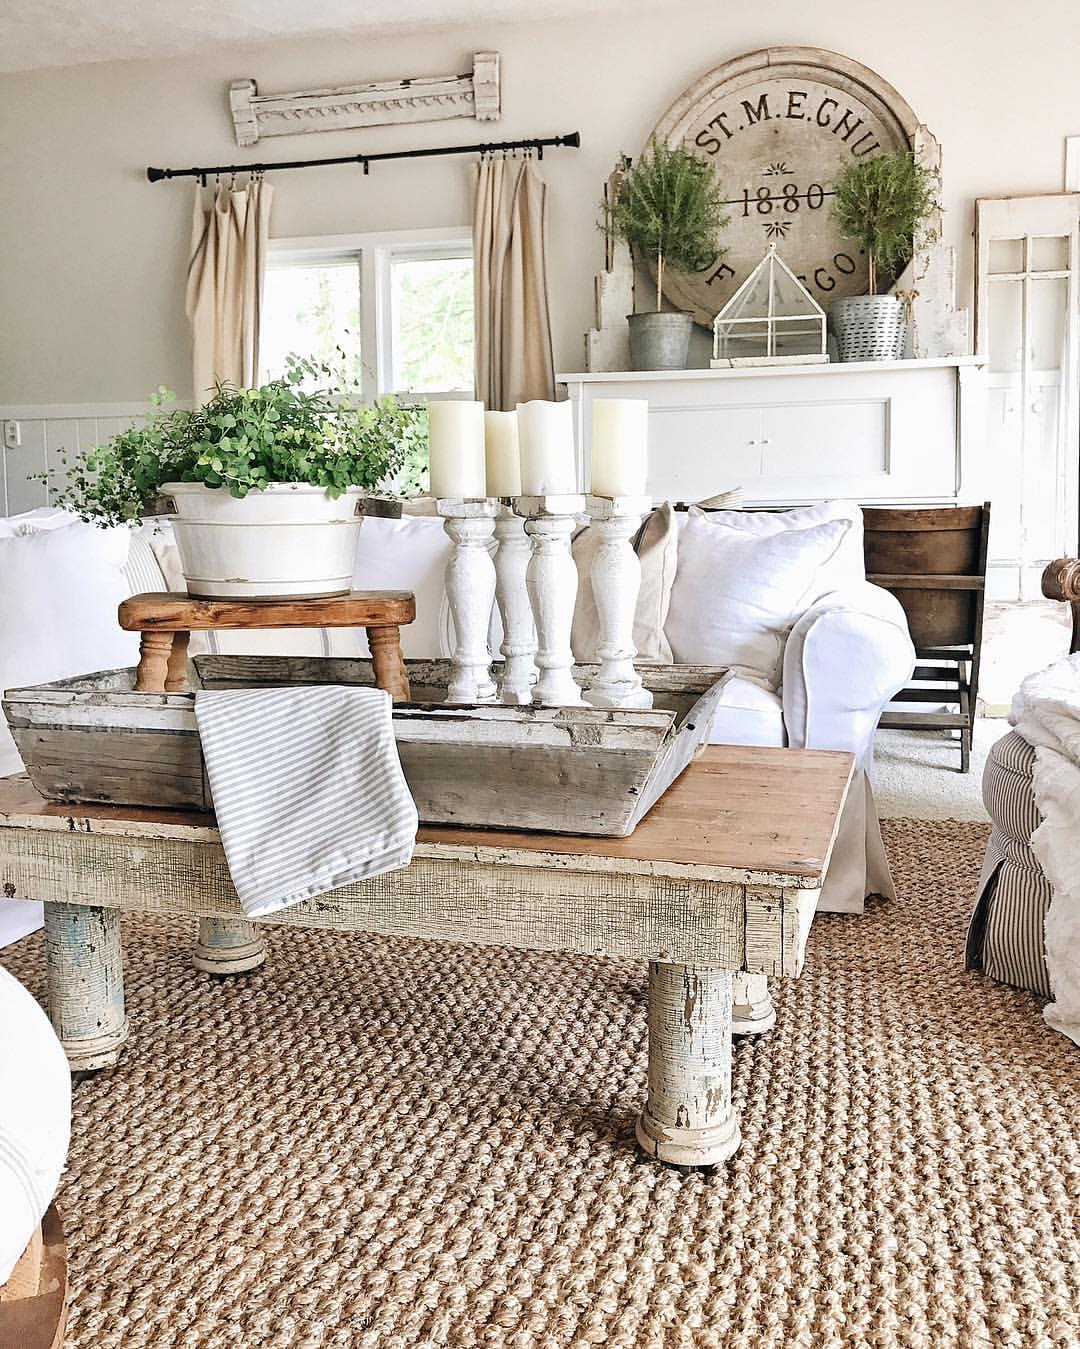 Decor Furniture 50 Best Farmhouse Furniture And Decor Ideas And Designs For 2019